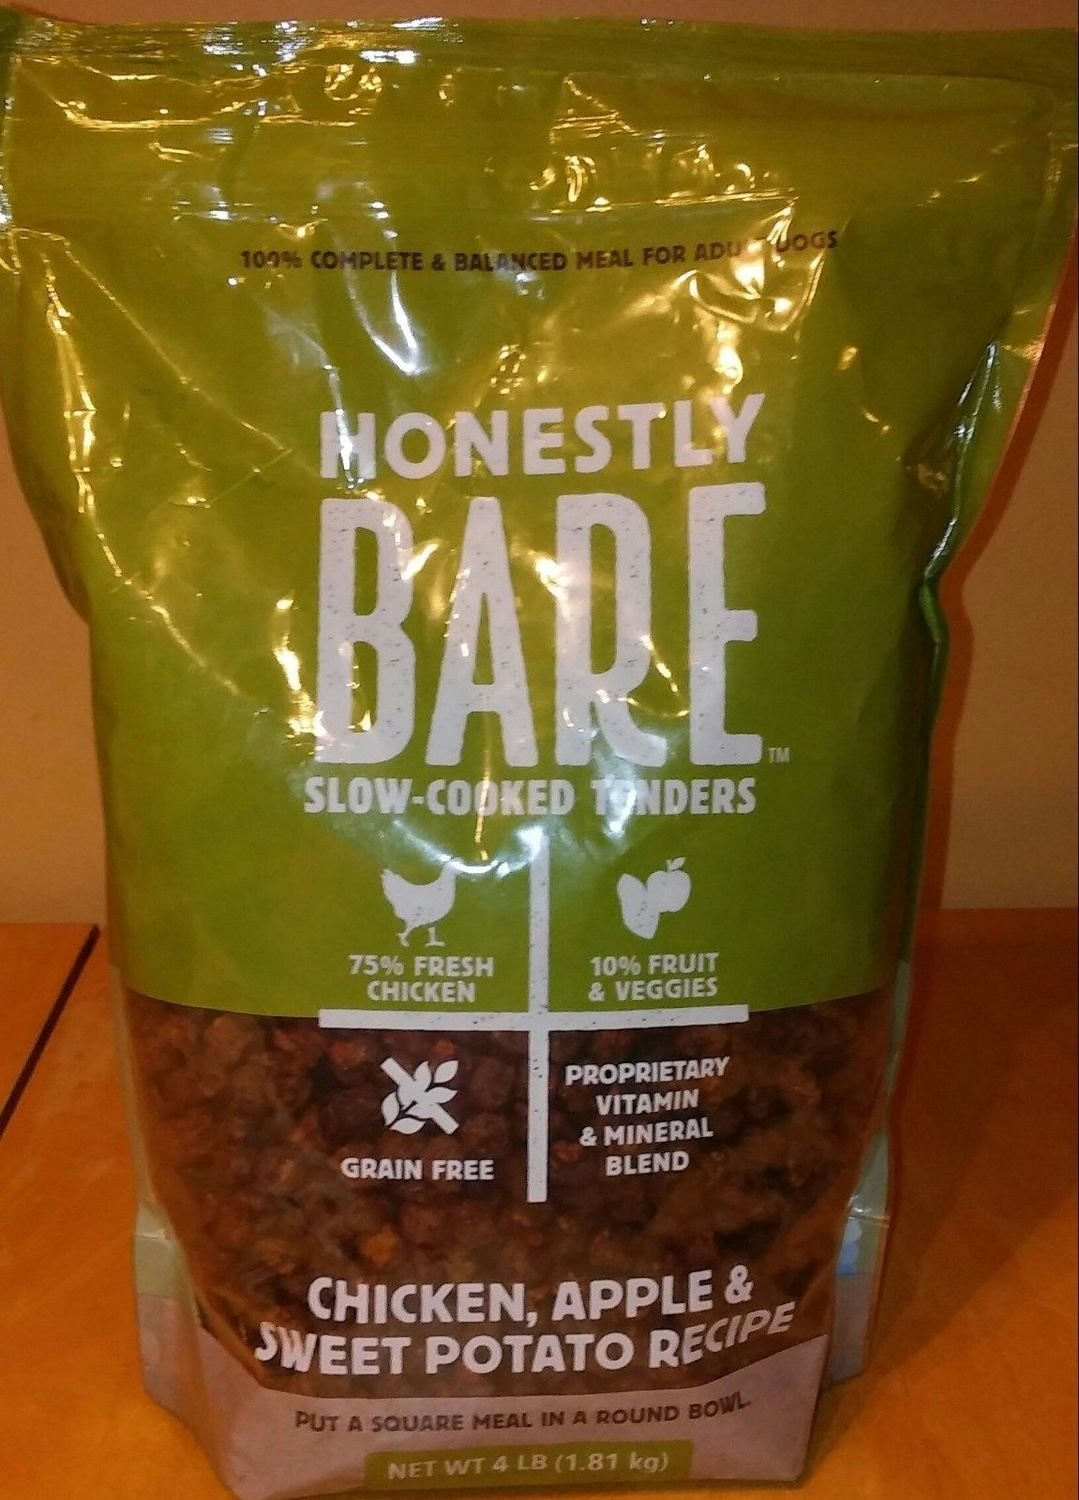 **SALE** Honestly Bare Grain Free Slow Cooked Tenders, 4lbs, Chicken, Apple & Sweet Potato (7/18) (A.M7) **SALE**